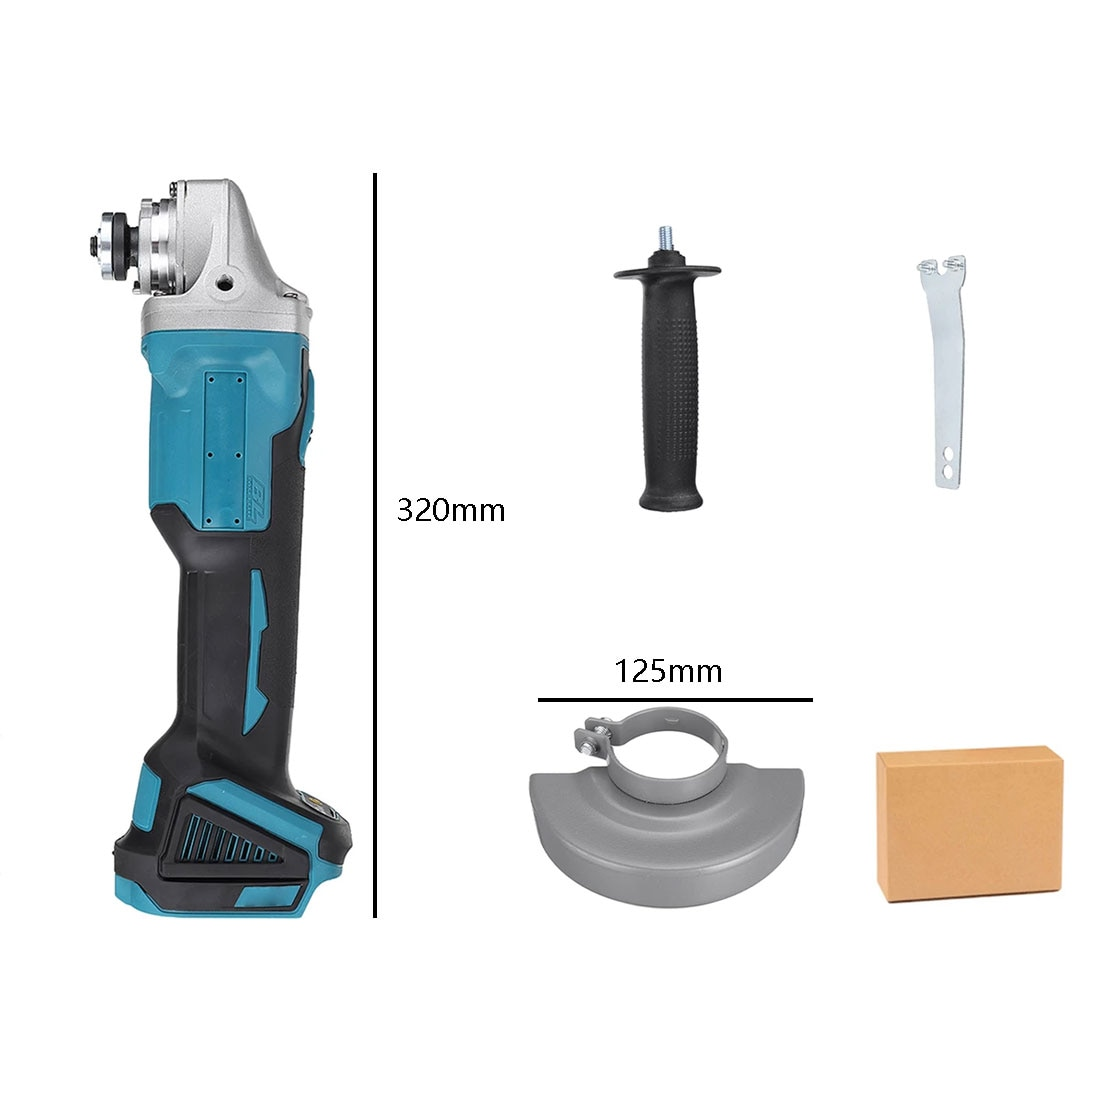 125Mm 4-Speed Brushless Grinder Cordless  DIY Woodworking Power Tool For 18V Makita Battery  Electric Angle Grinder